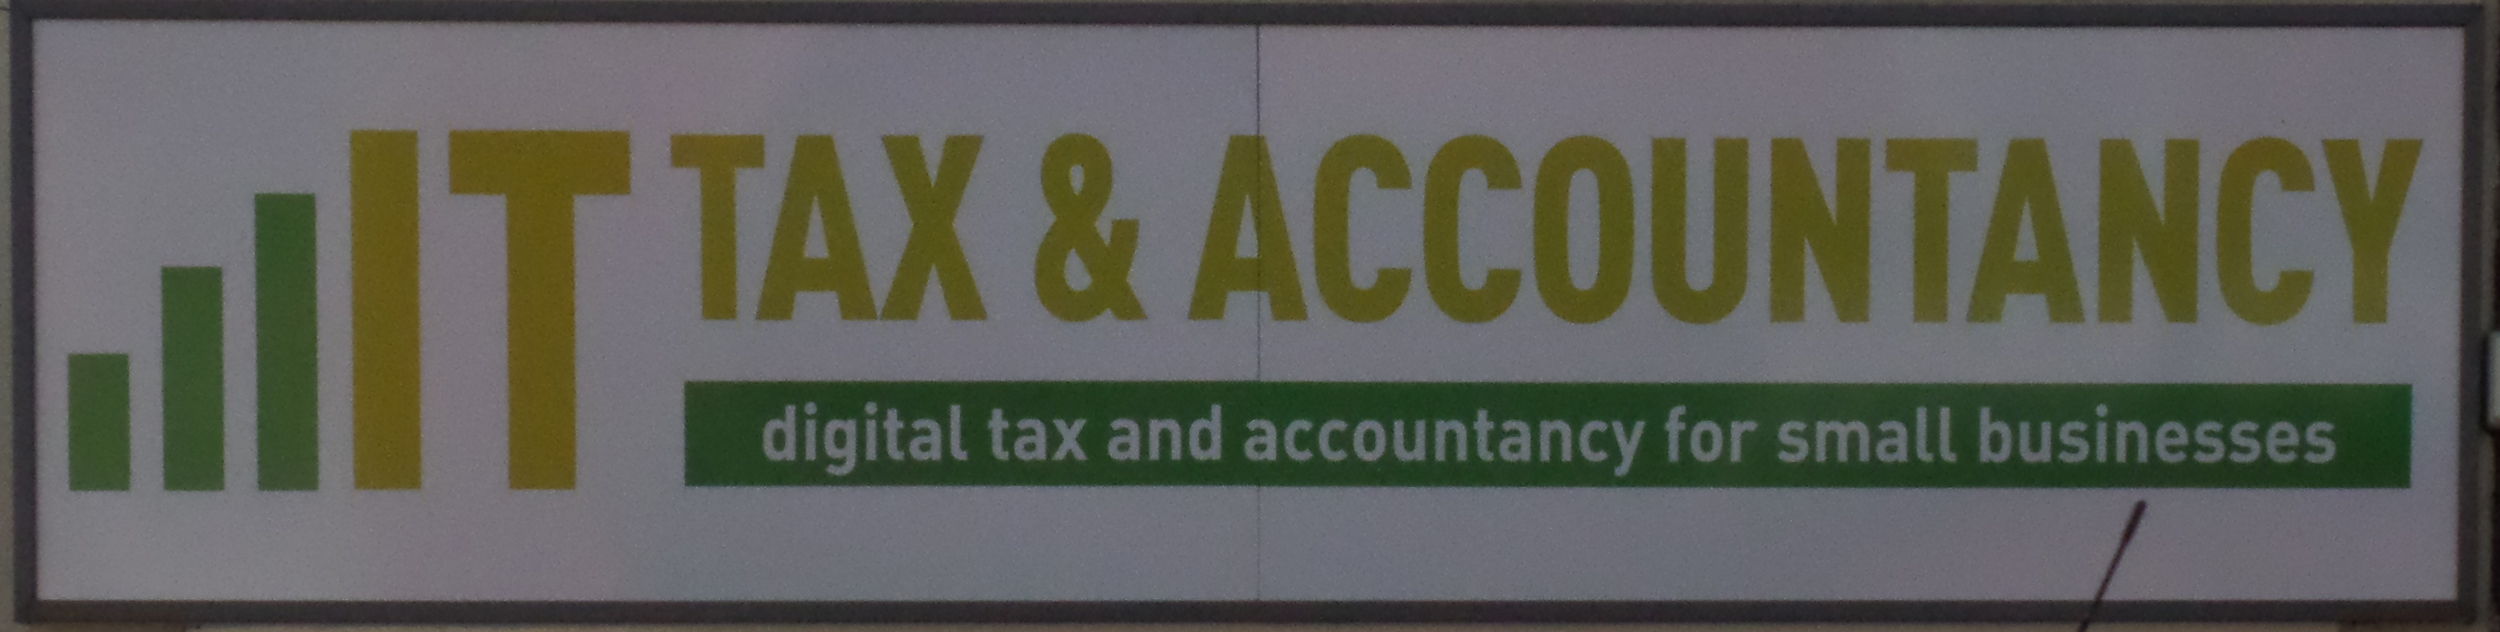 Tax & Accounts (accountants)